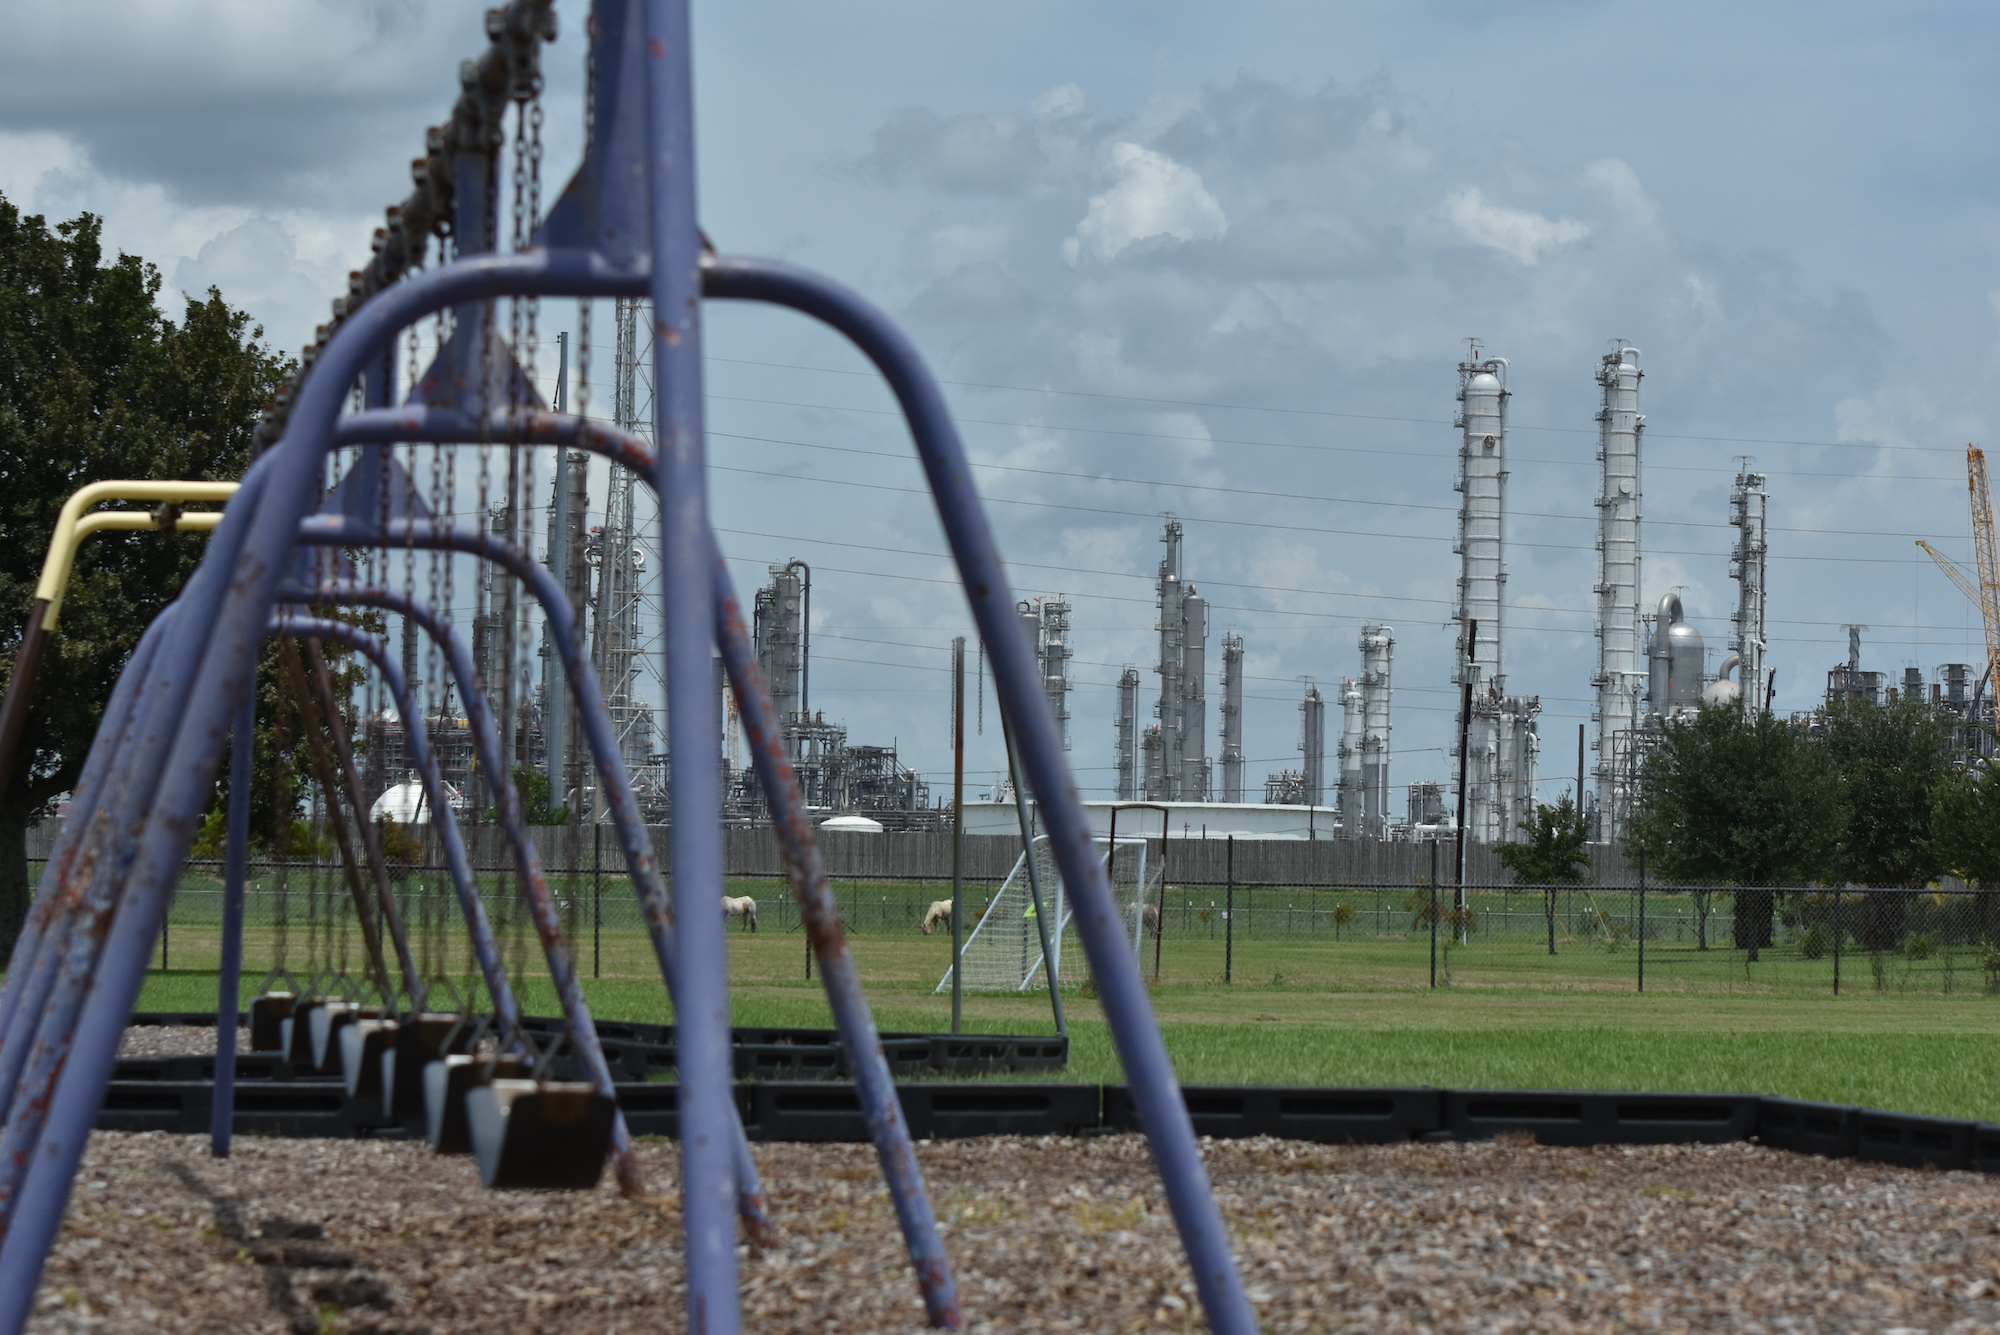 <h4>POLLUTERS MUST BE HELD ACCOUNTABLE</h4><h5>but over the last 8 years, the Texas Commission on Environmental Quality has financially penalized companies for only 3% of all illegal air pollution events.</h5><em>Heather Carroll Photography</em>